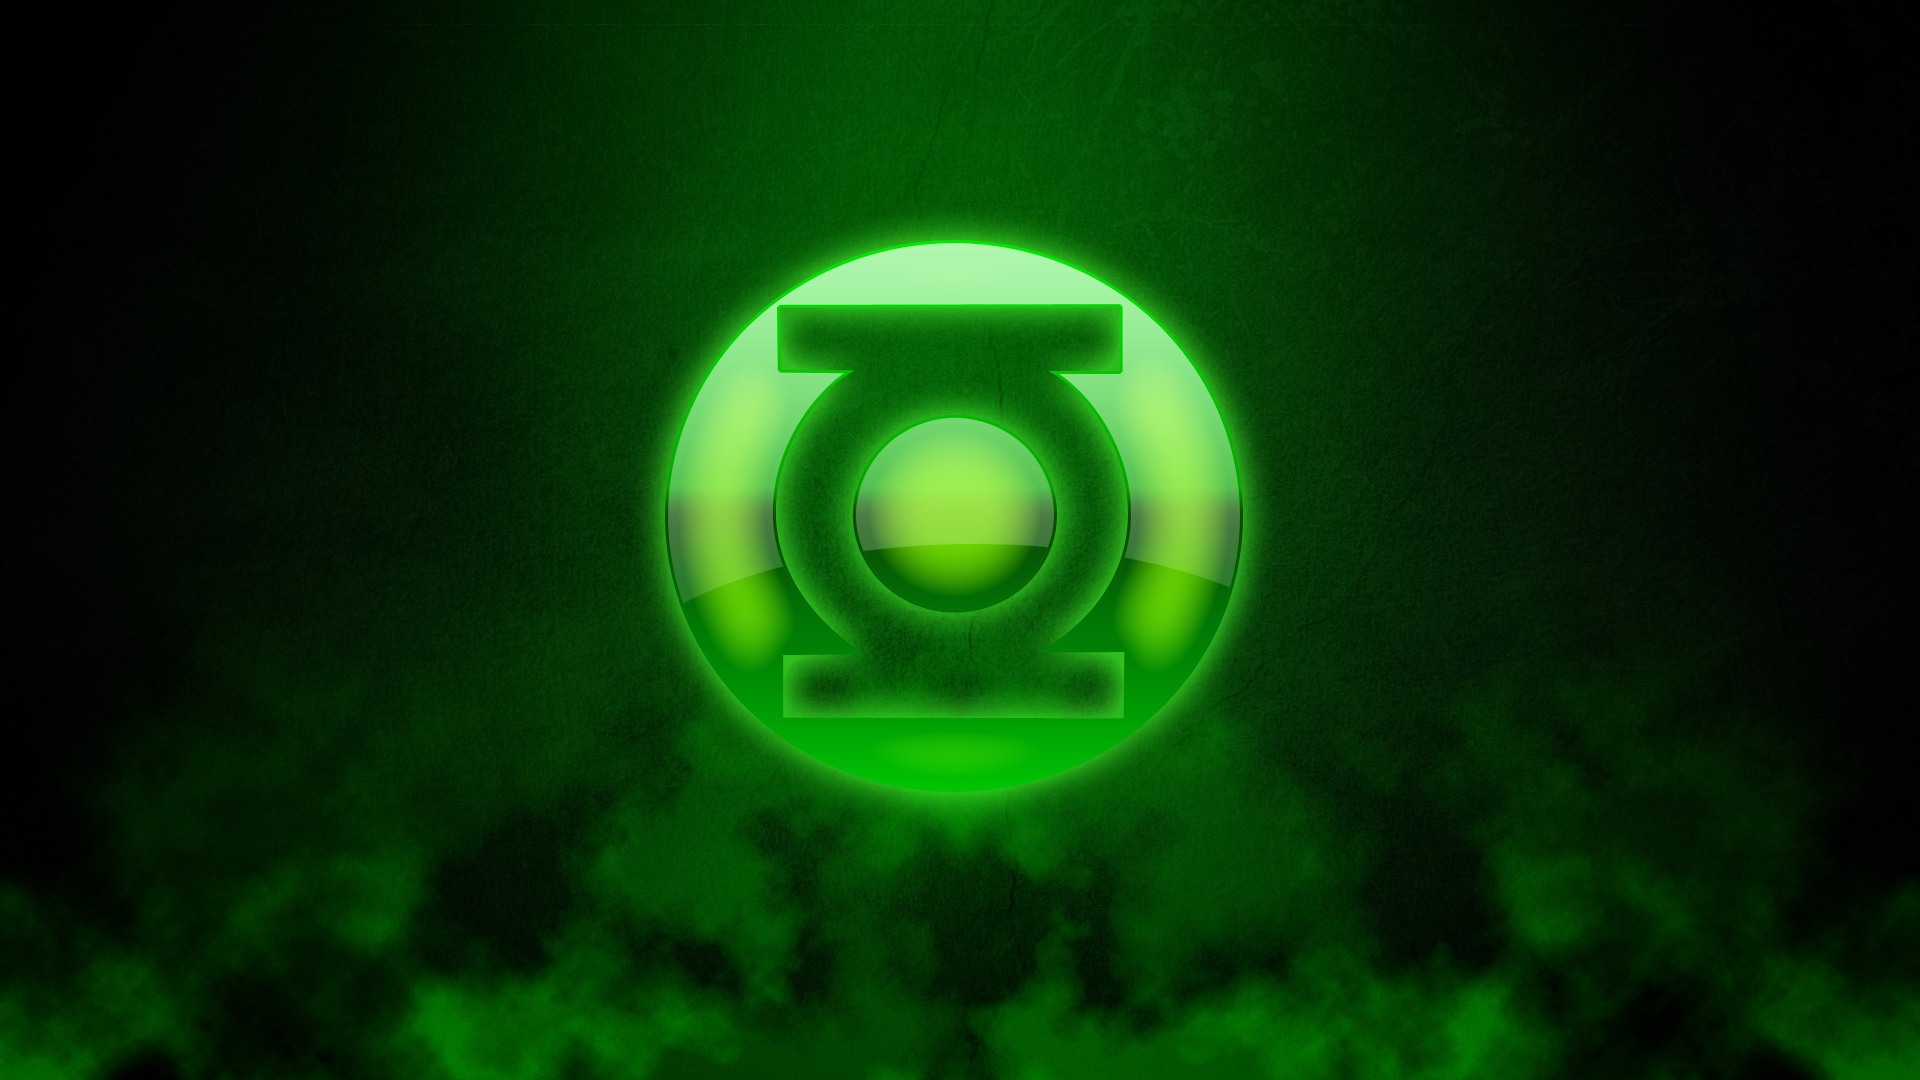 Download image Green Lantern Logo Desktop Wallpaper PC Android 1920x1080